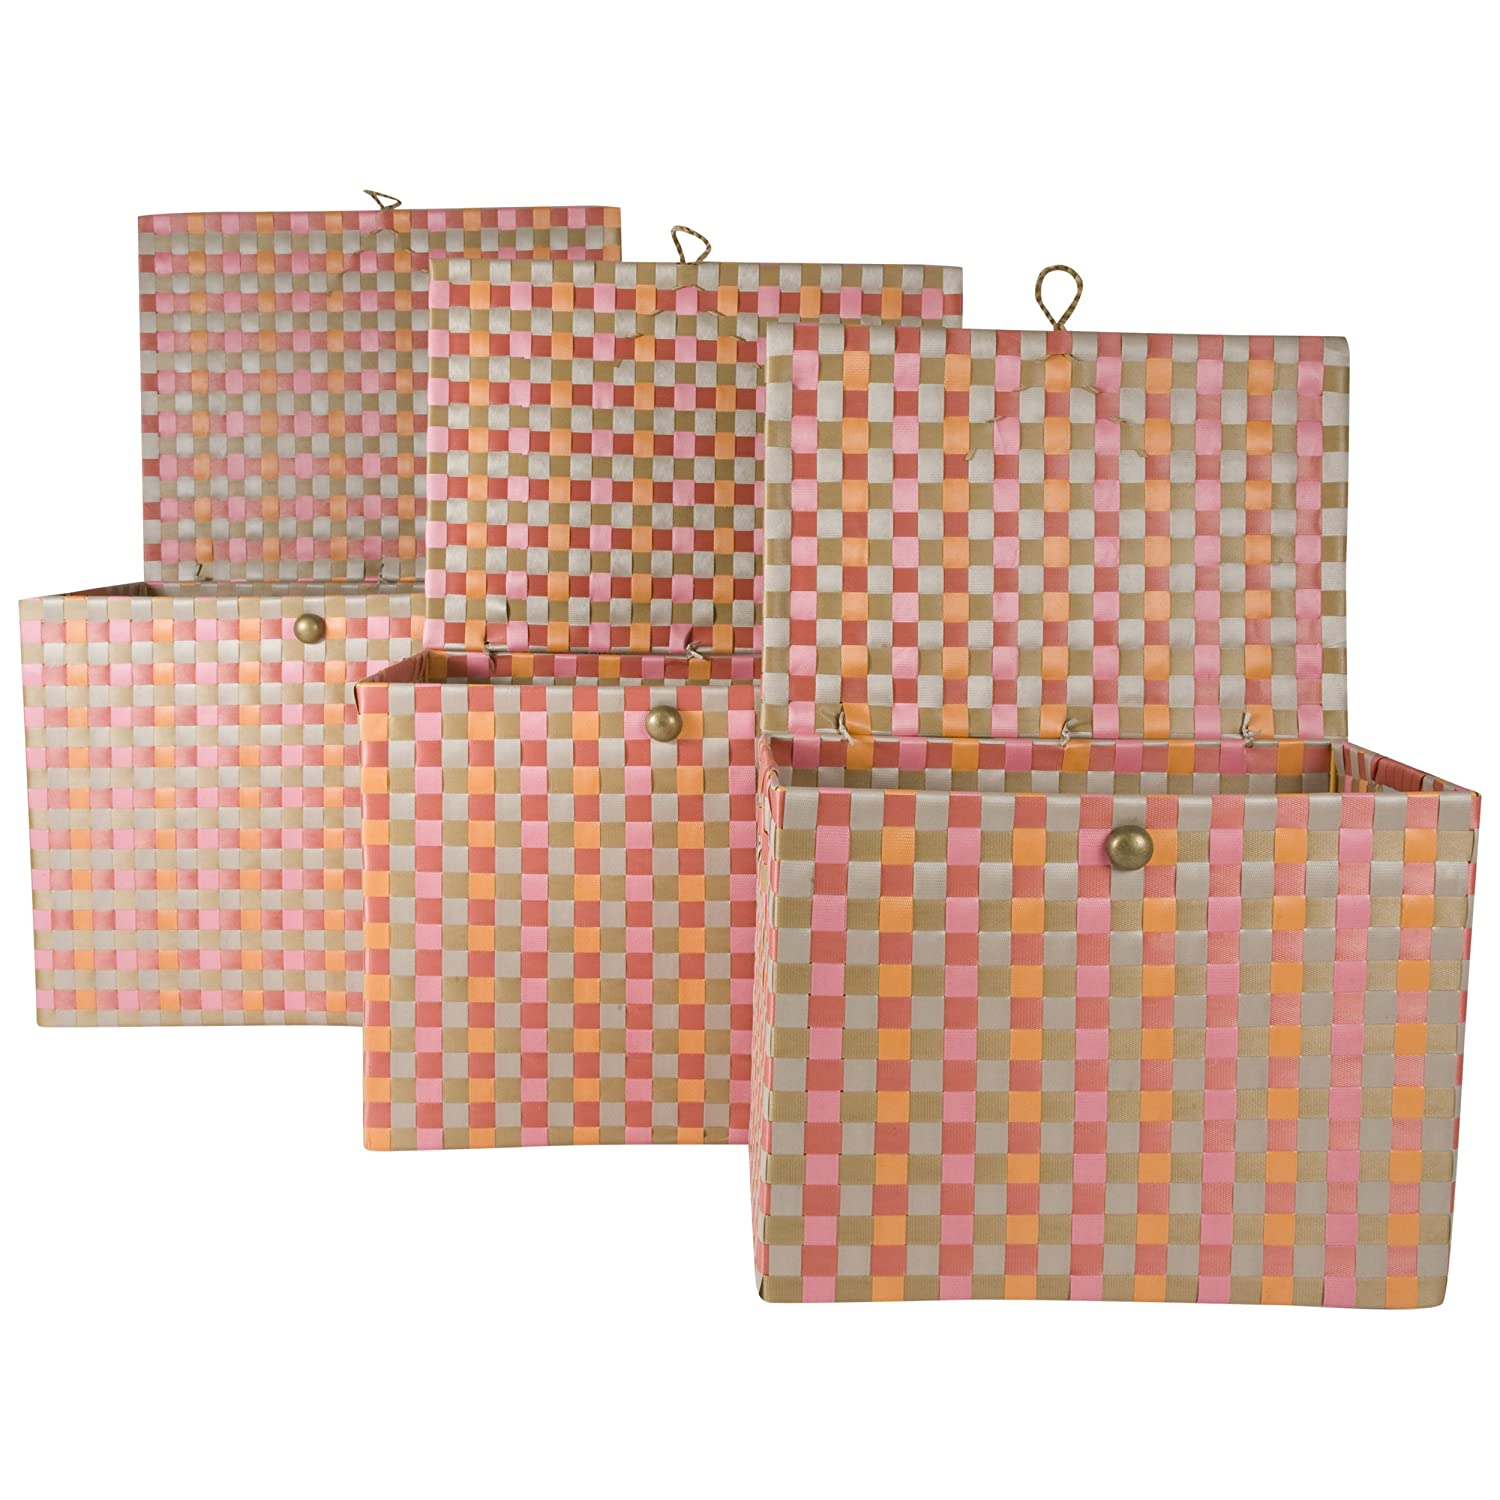 7a127a356e2f Amazon.com  Set of 3 Large Nylon Lidded Storage Bins Nested (Set of 3)  (Pink Red and Grey)  Home   Kitchen